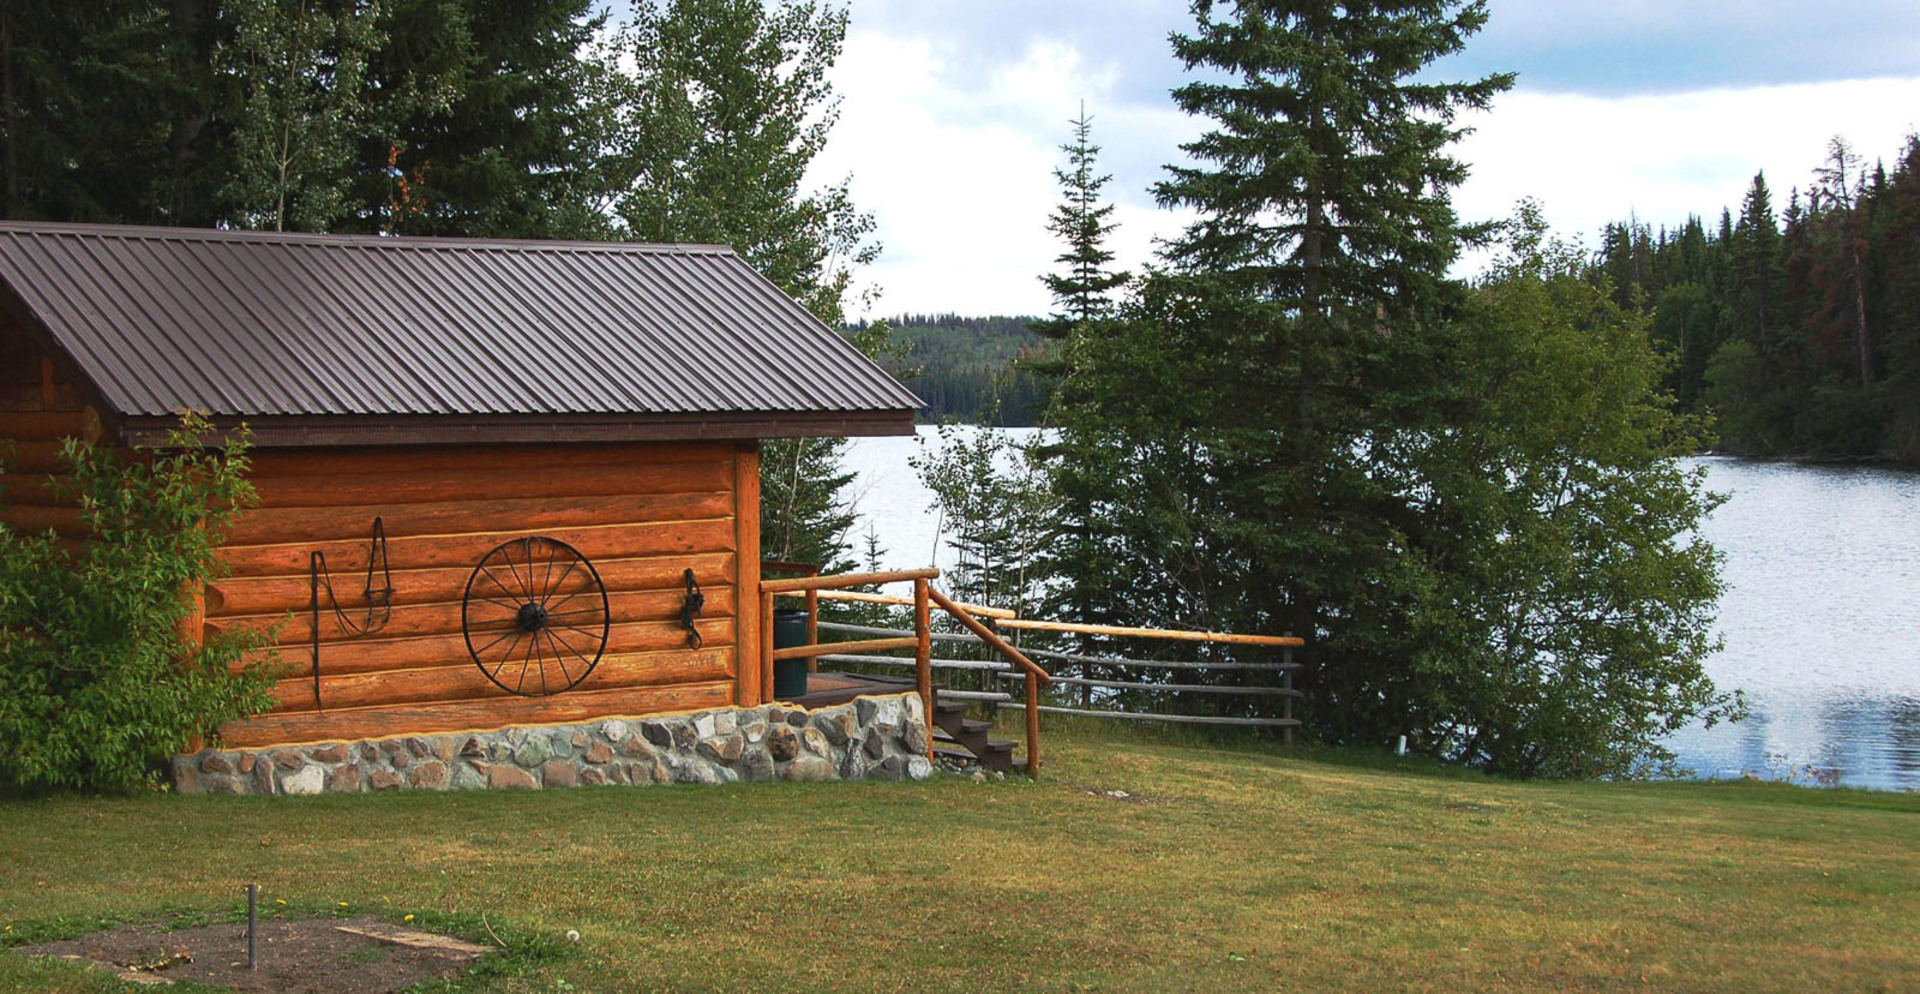 Bridge Lake Real Estate at 7806 N Bonaparte Road, Bridge Lake/Sheridan Lake, 100 Mile House